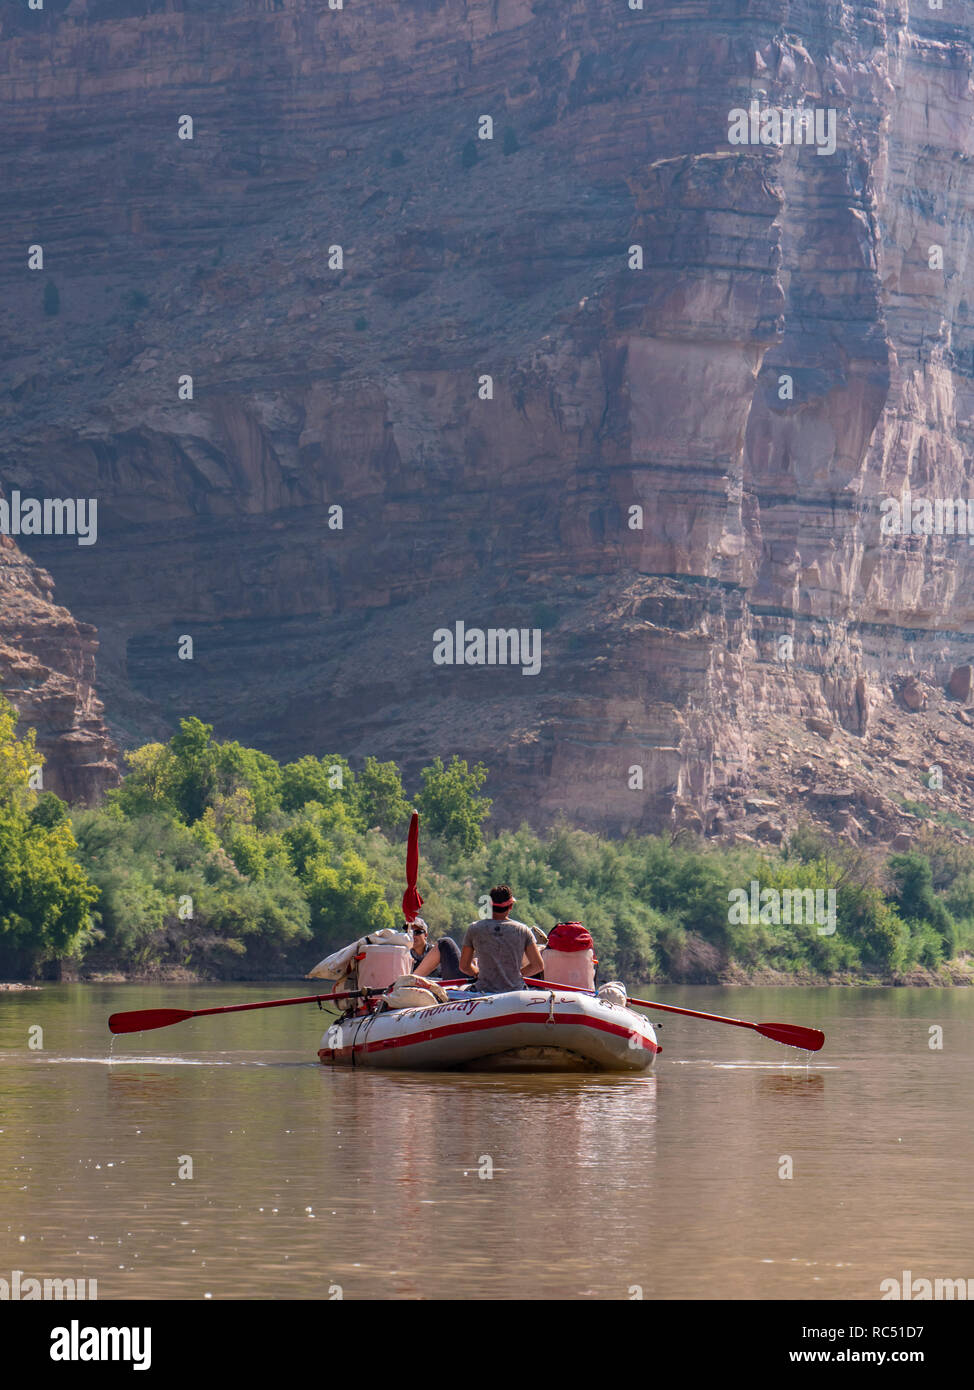 Floating the river, upper Desolation Canyon north of Green River, Utah. - Stock Image